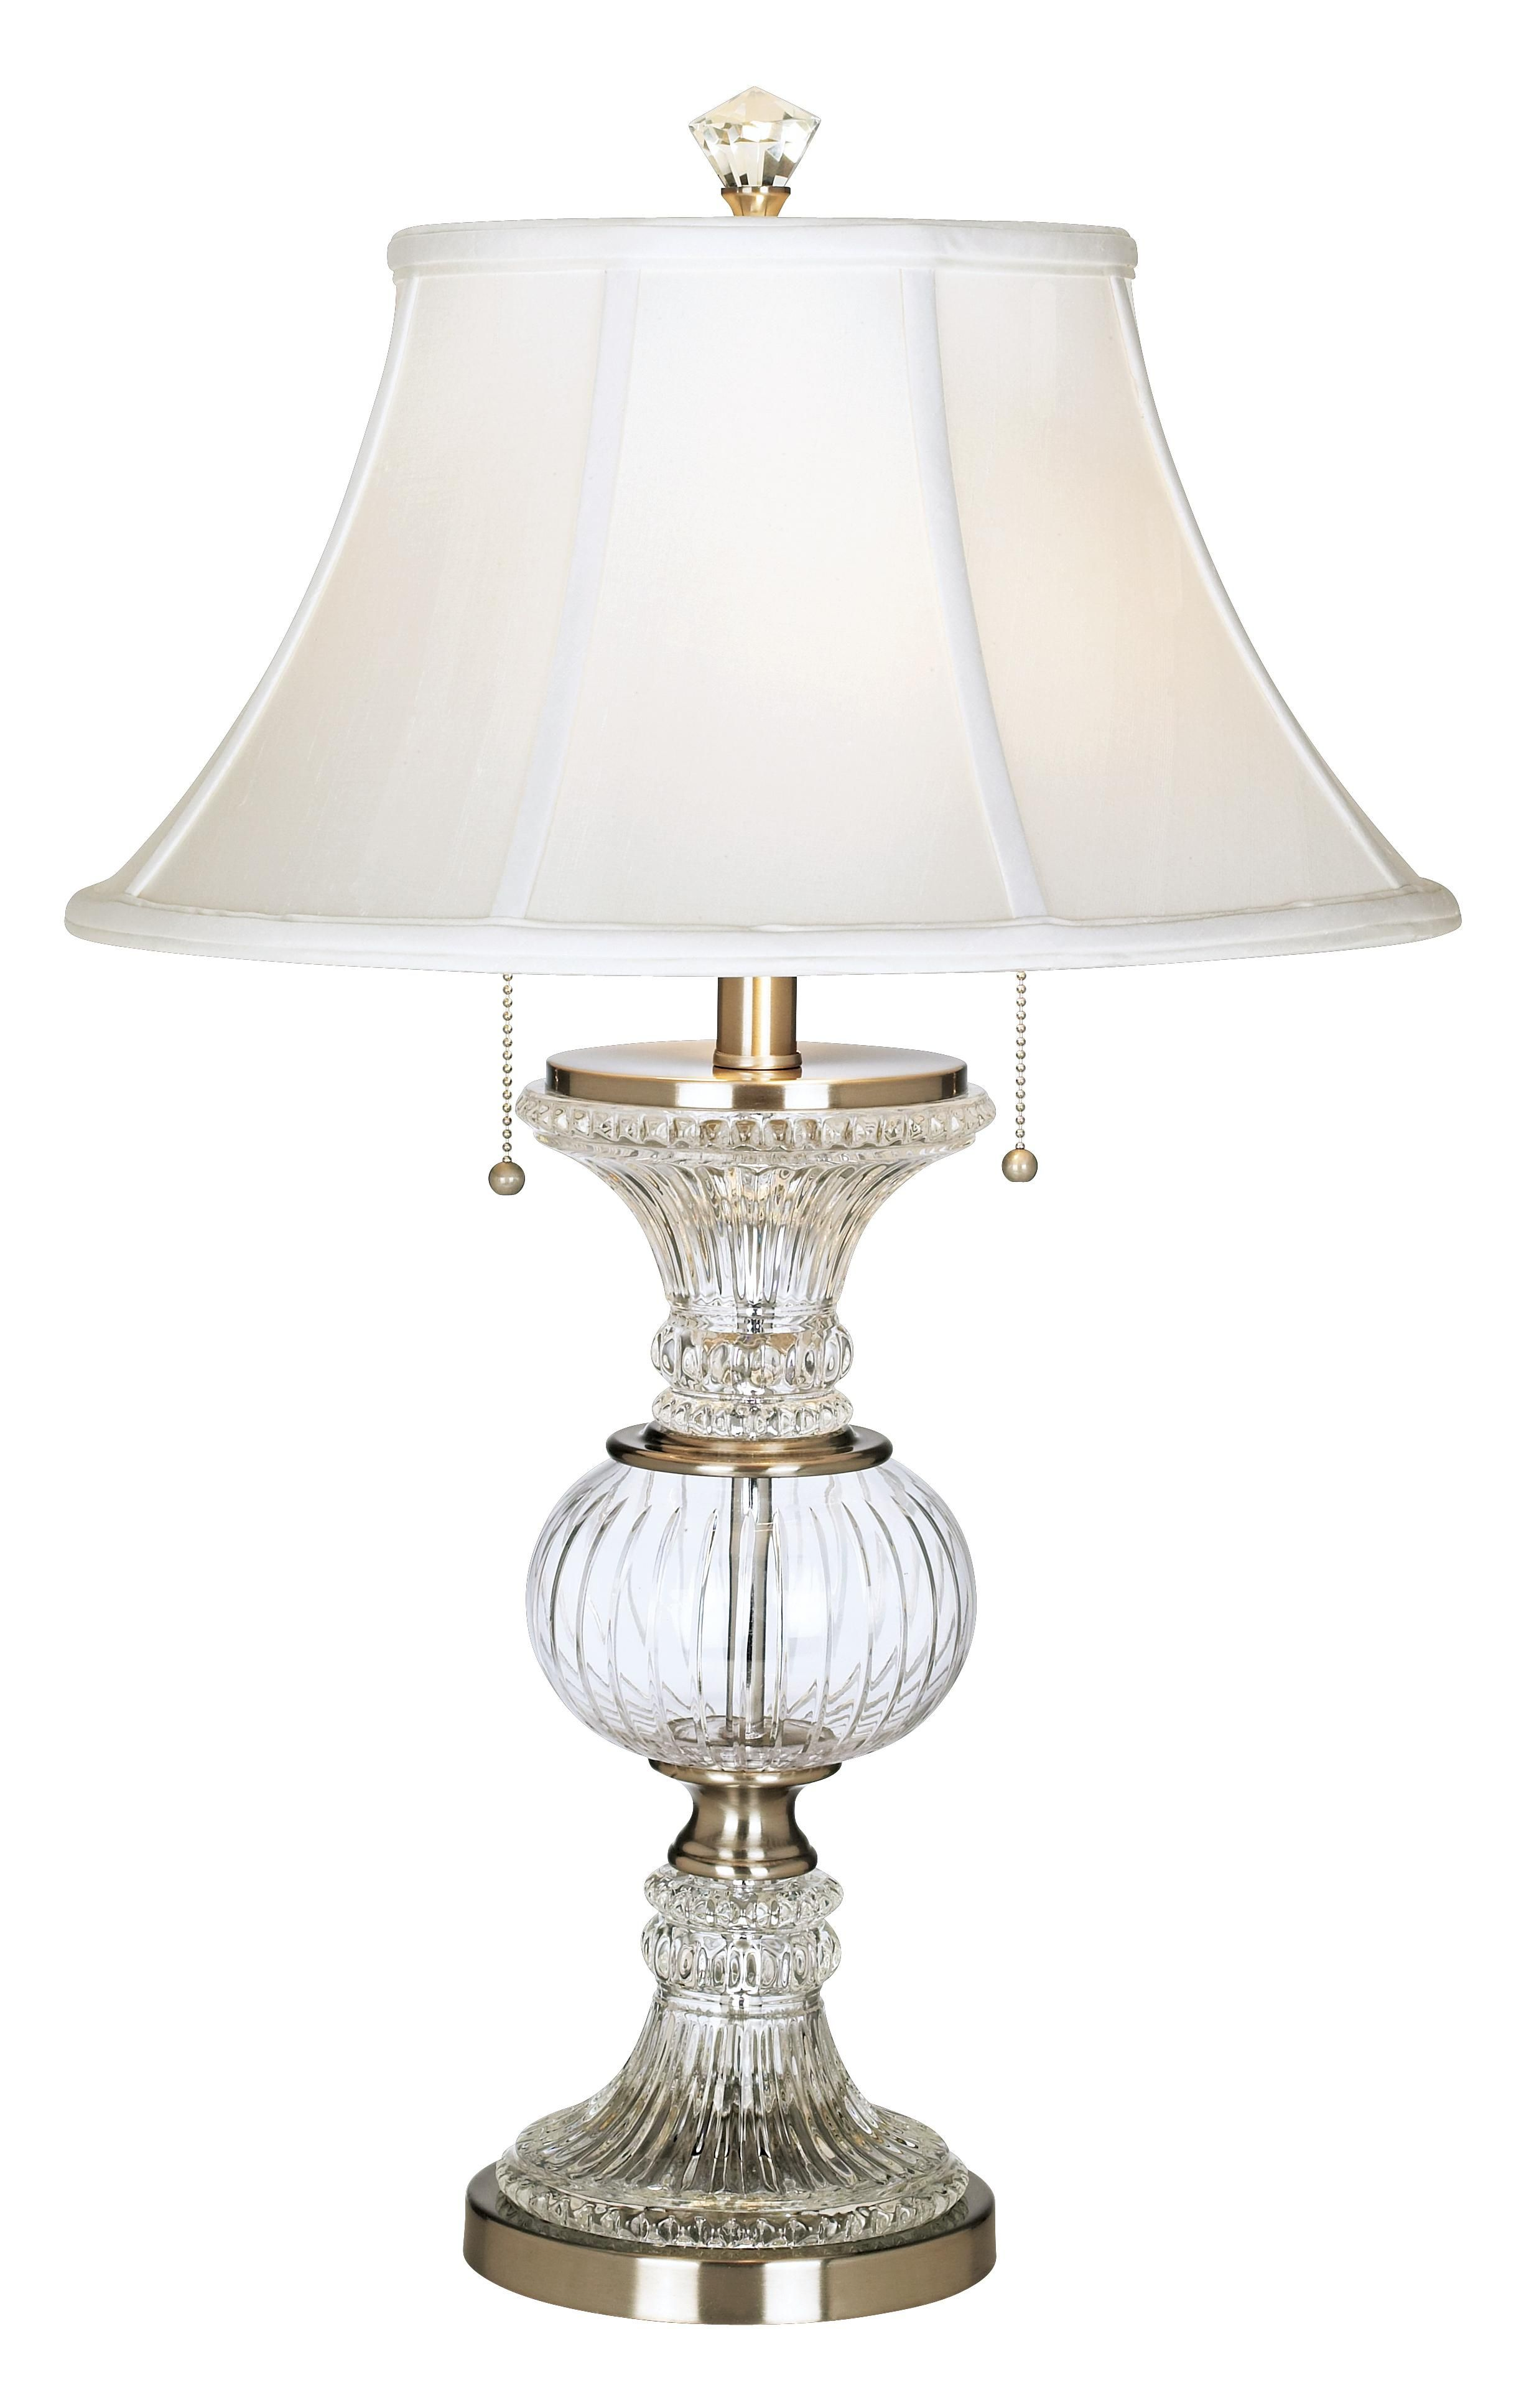 Dale Tiffany Crystal Globe Table Lamp In My Dresser Crystal